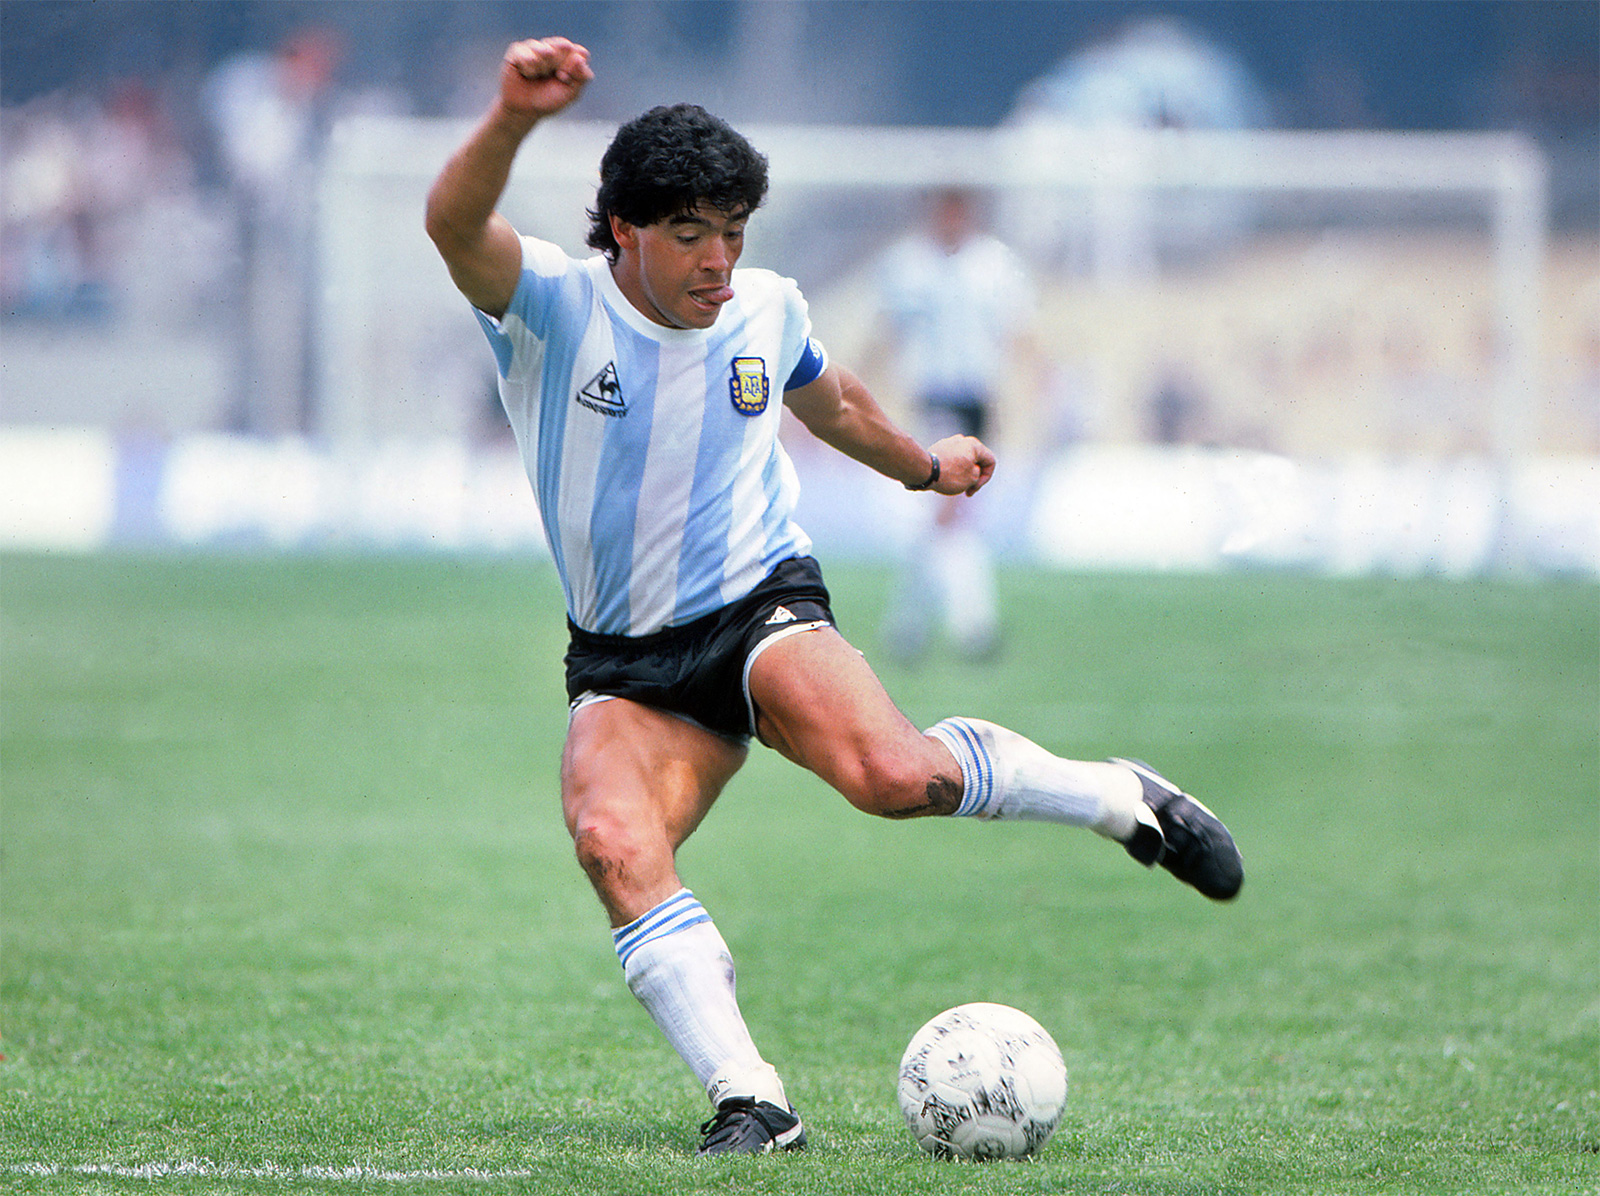 Maradona's 'Hand Of God' shirt could be yours – for $2 million